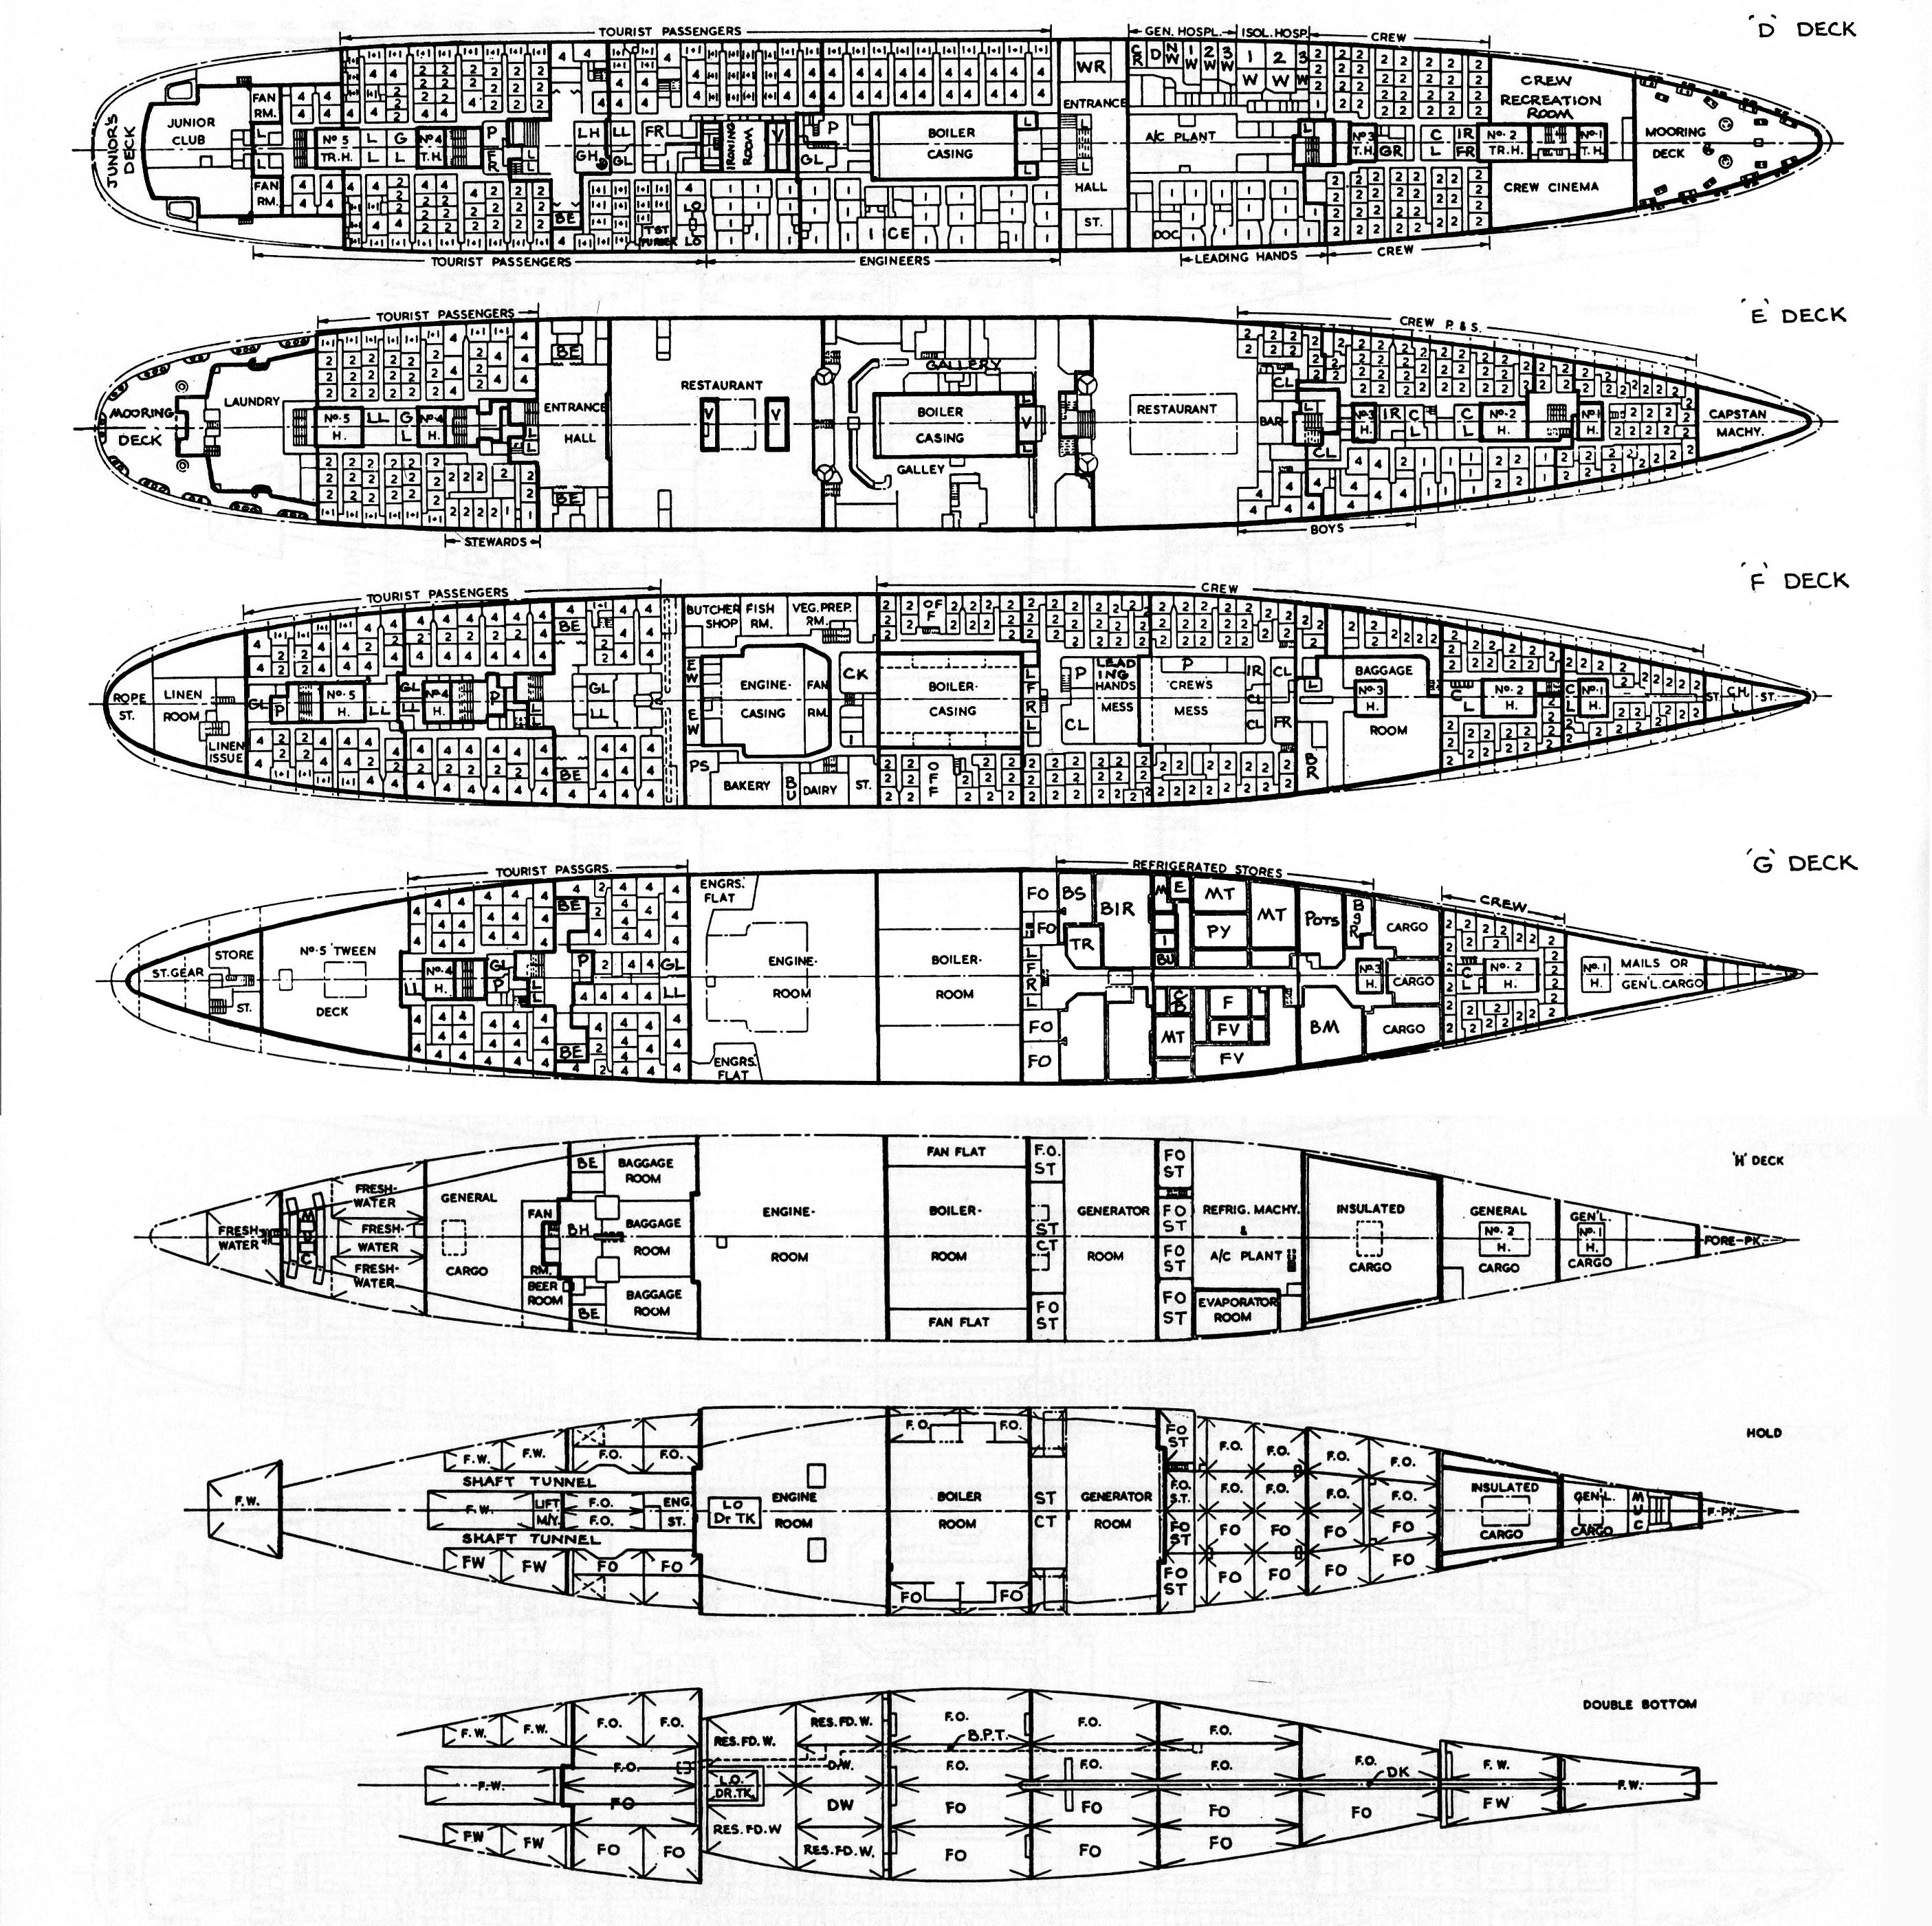 Building ss oriana plans and more a starboard side view of her layout baanklon Gallery